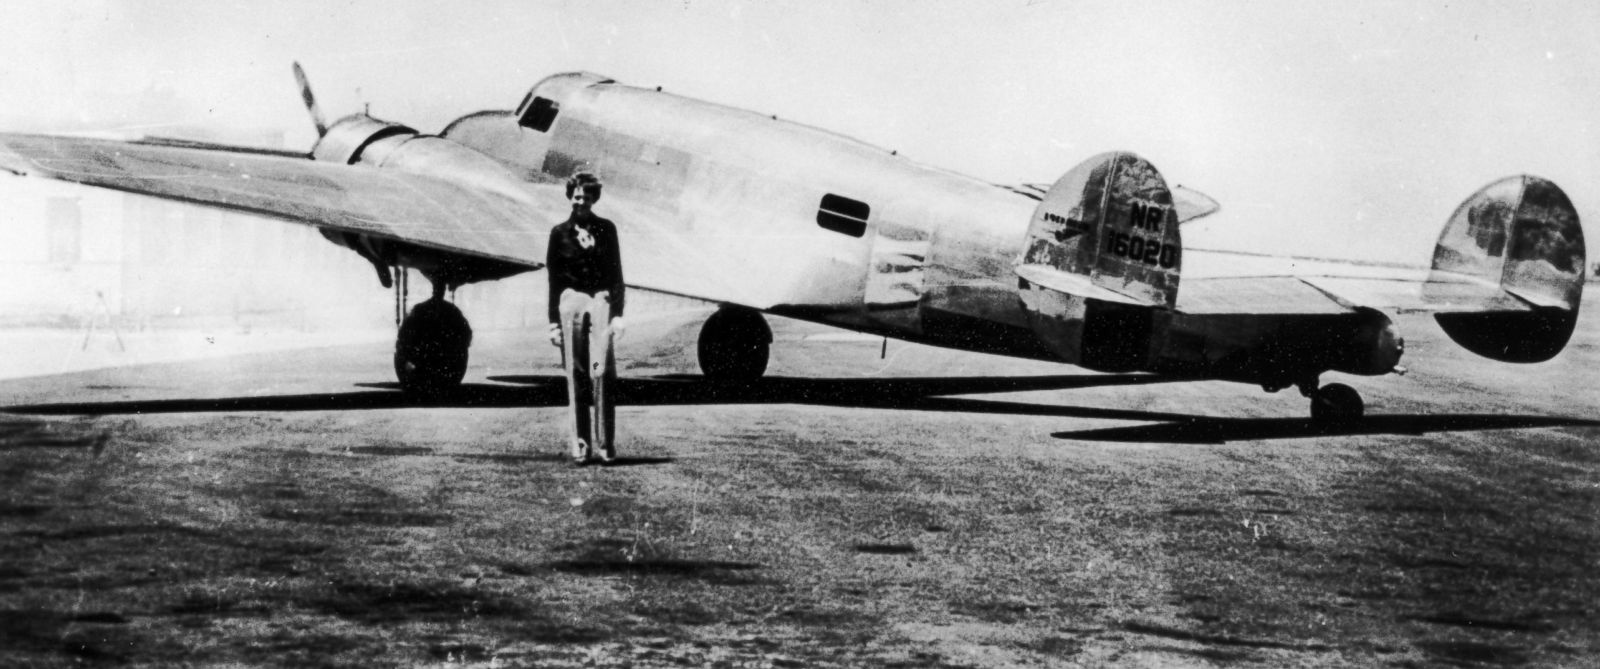 PHOTO: Amelia Earhart in front of her new plane, Electra, circa 1937.